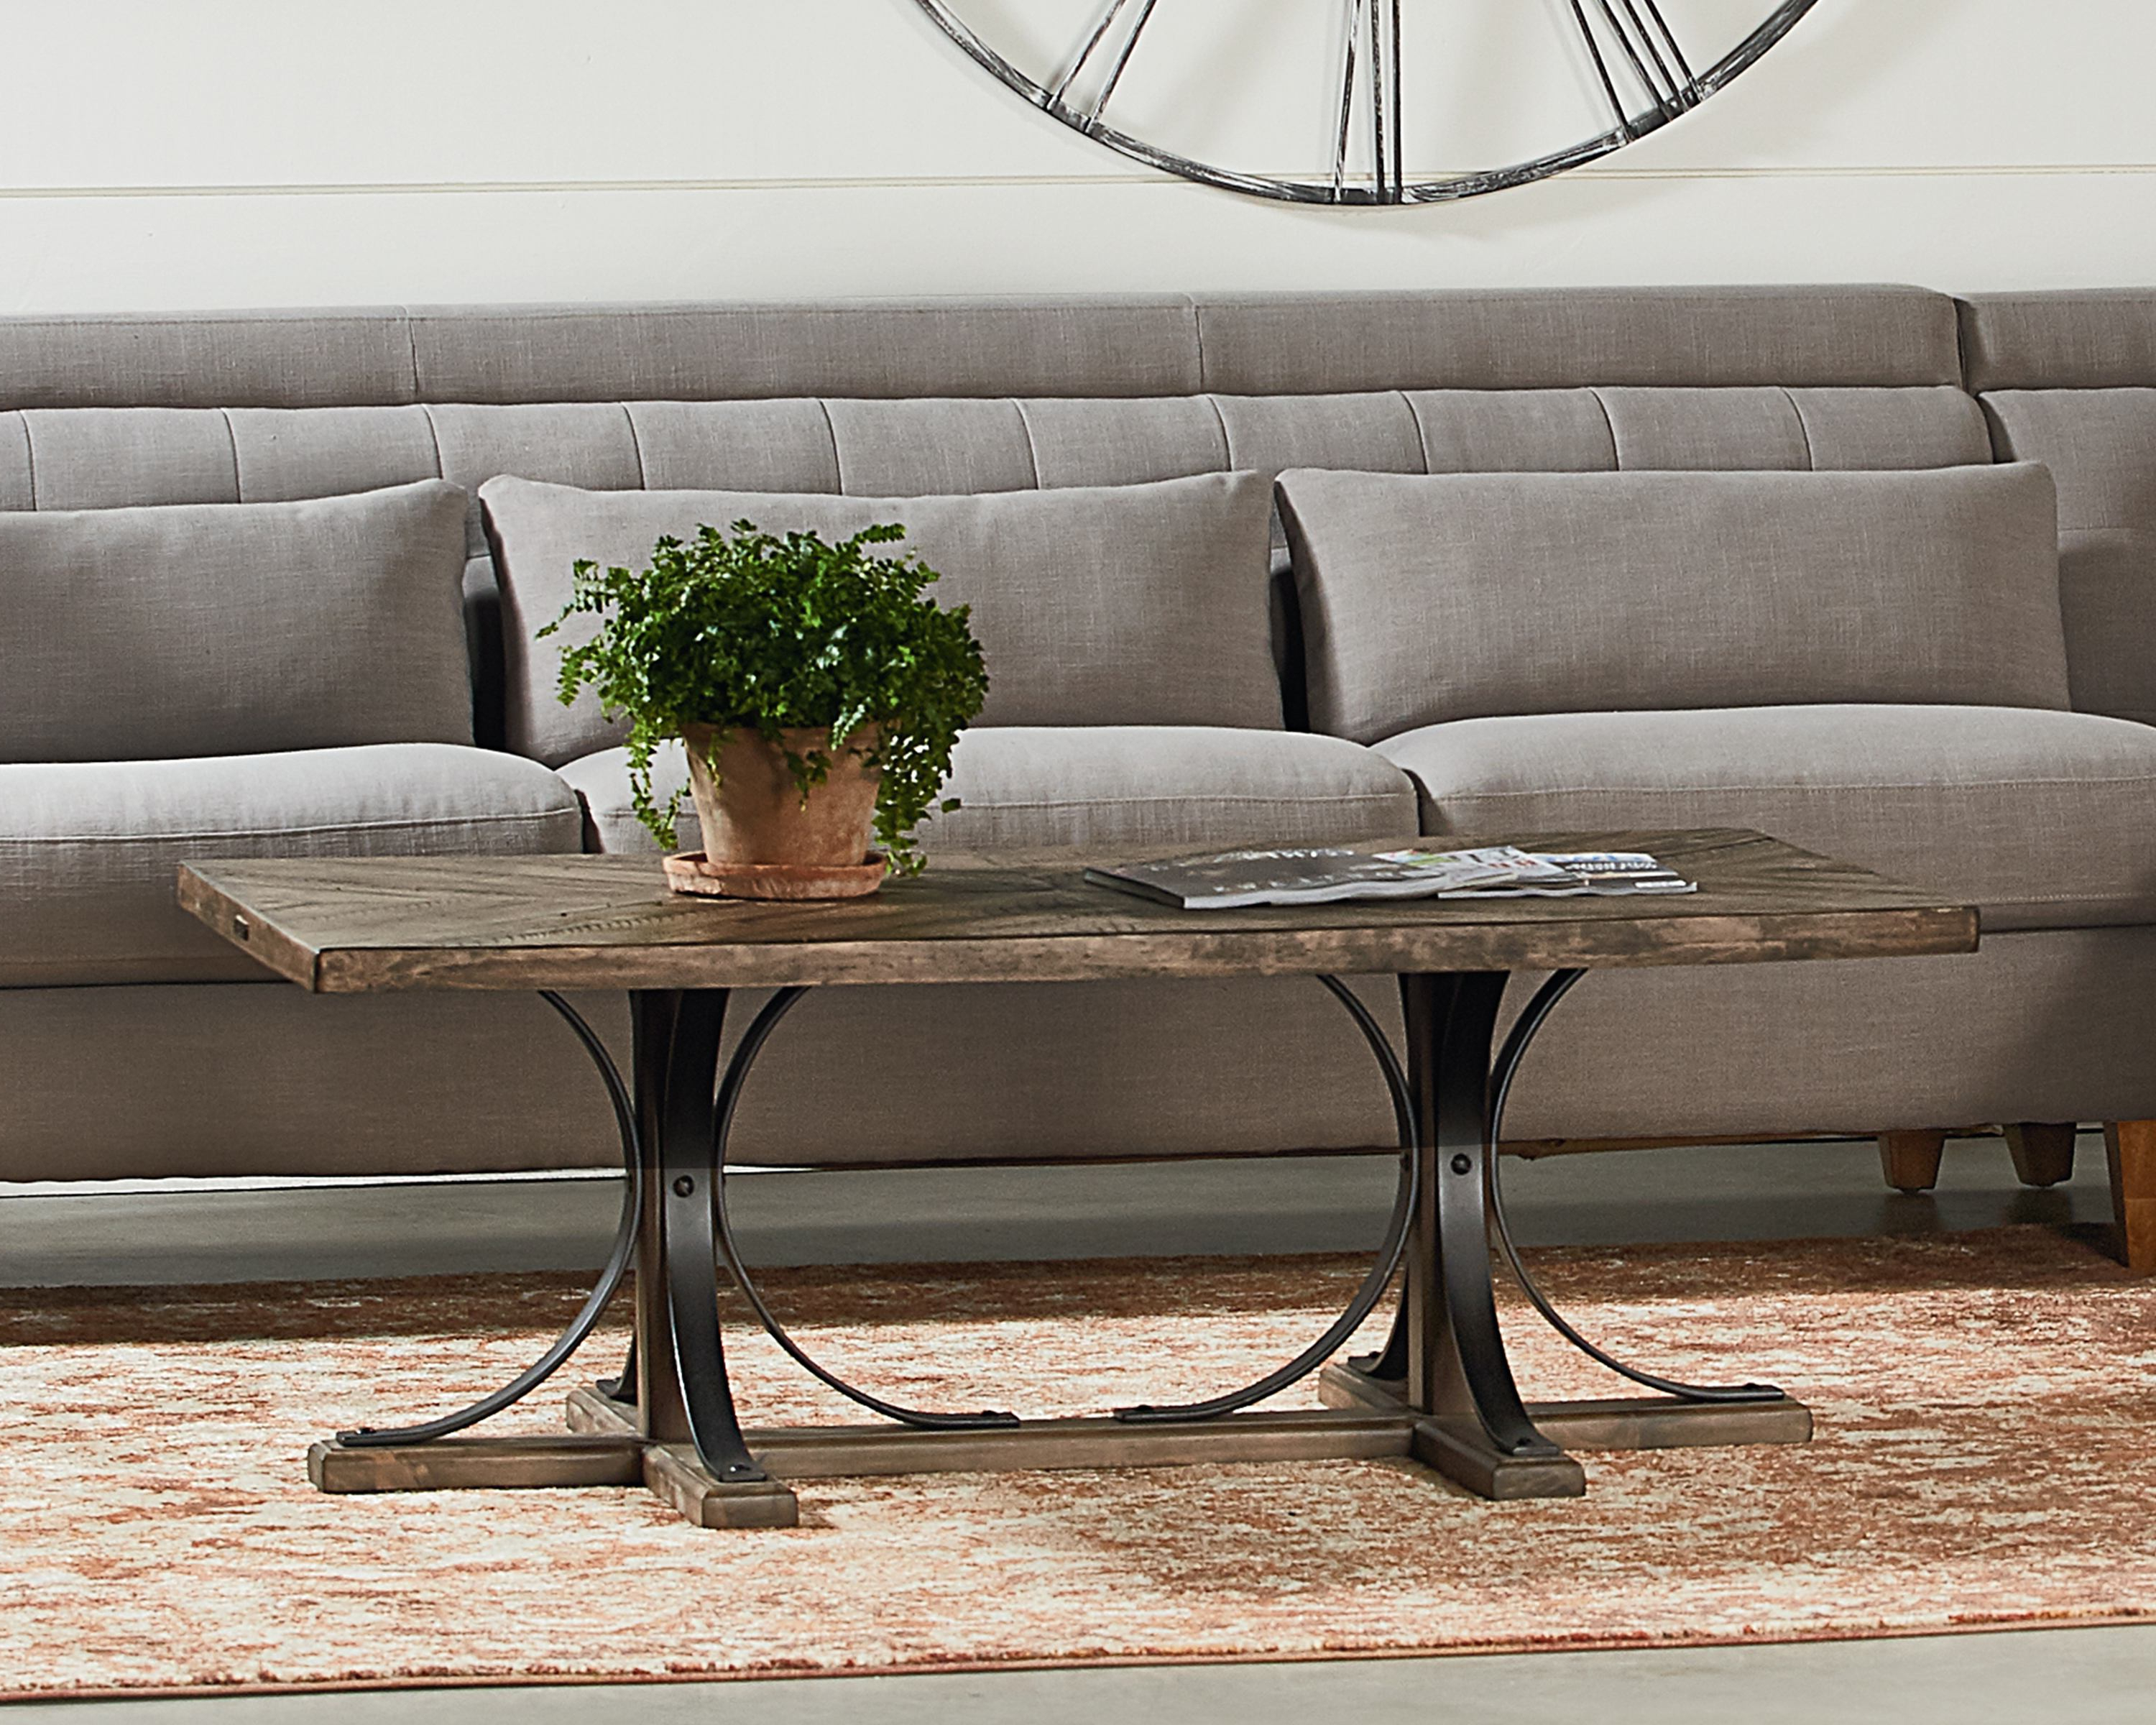 Best And Newest Iron Trestle Coffee Table – Magnolia Home With Regard To Magnolia Home Iron Trestle Cocktail Tables (View 1 of 20)